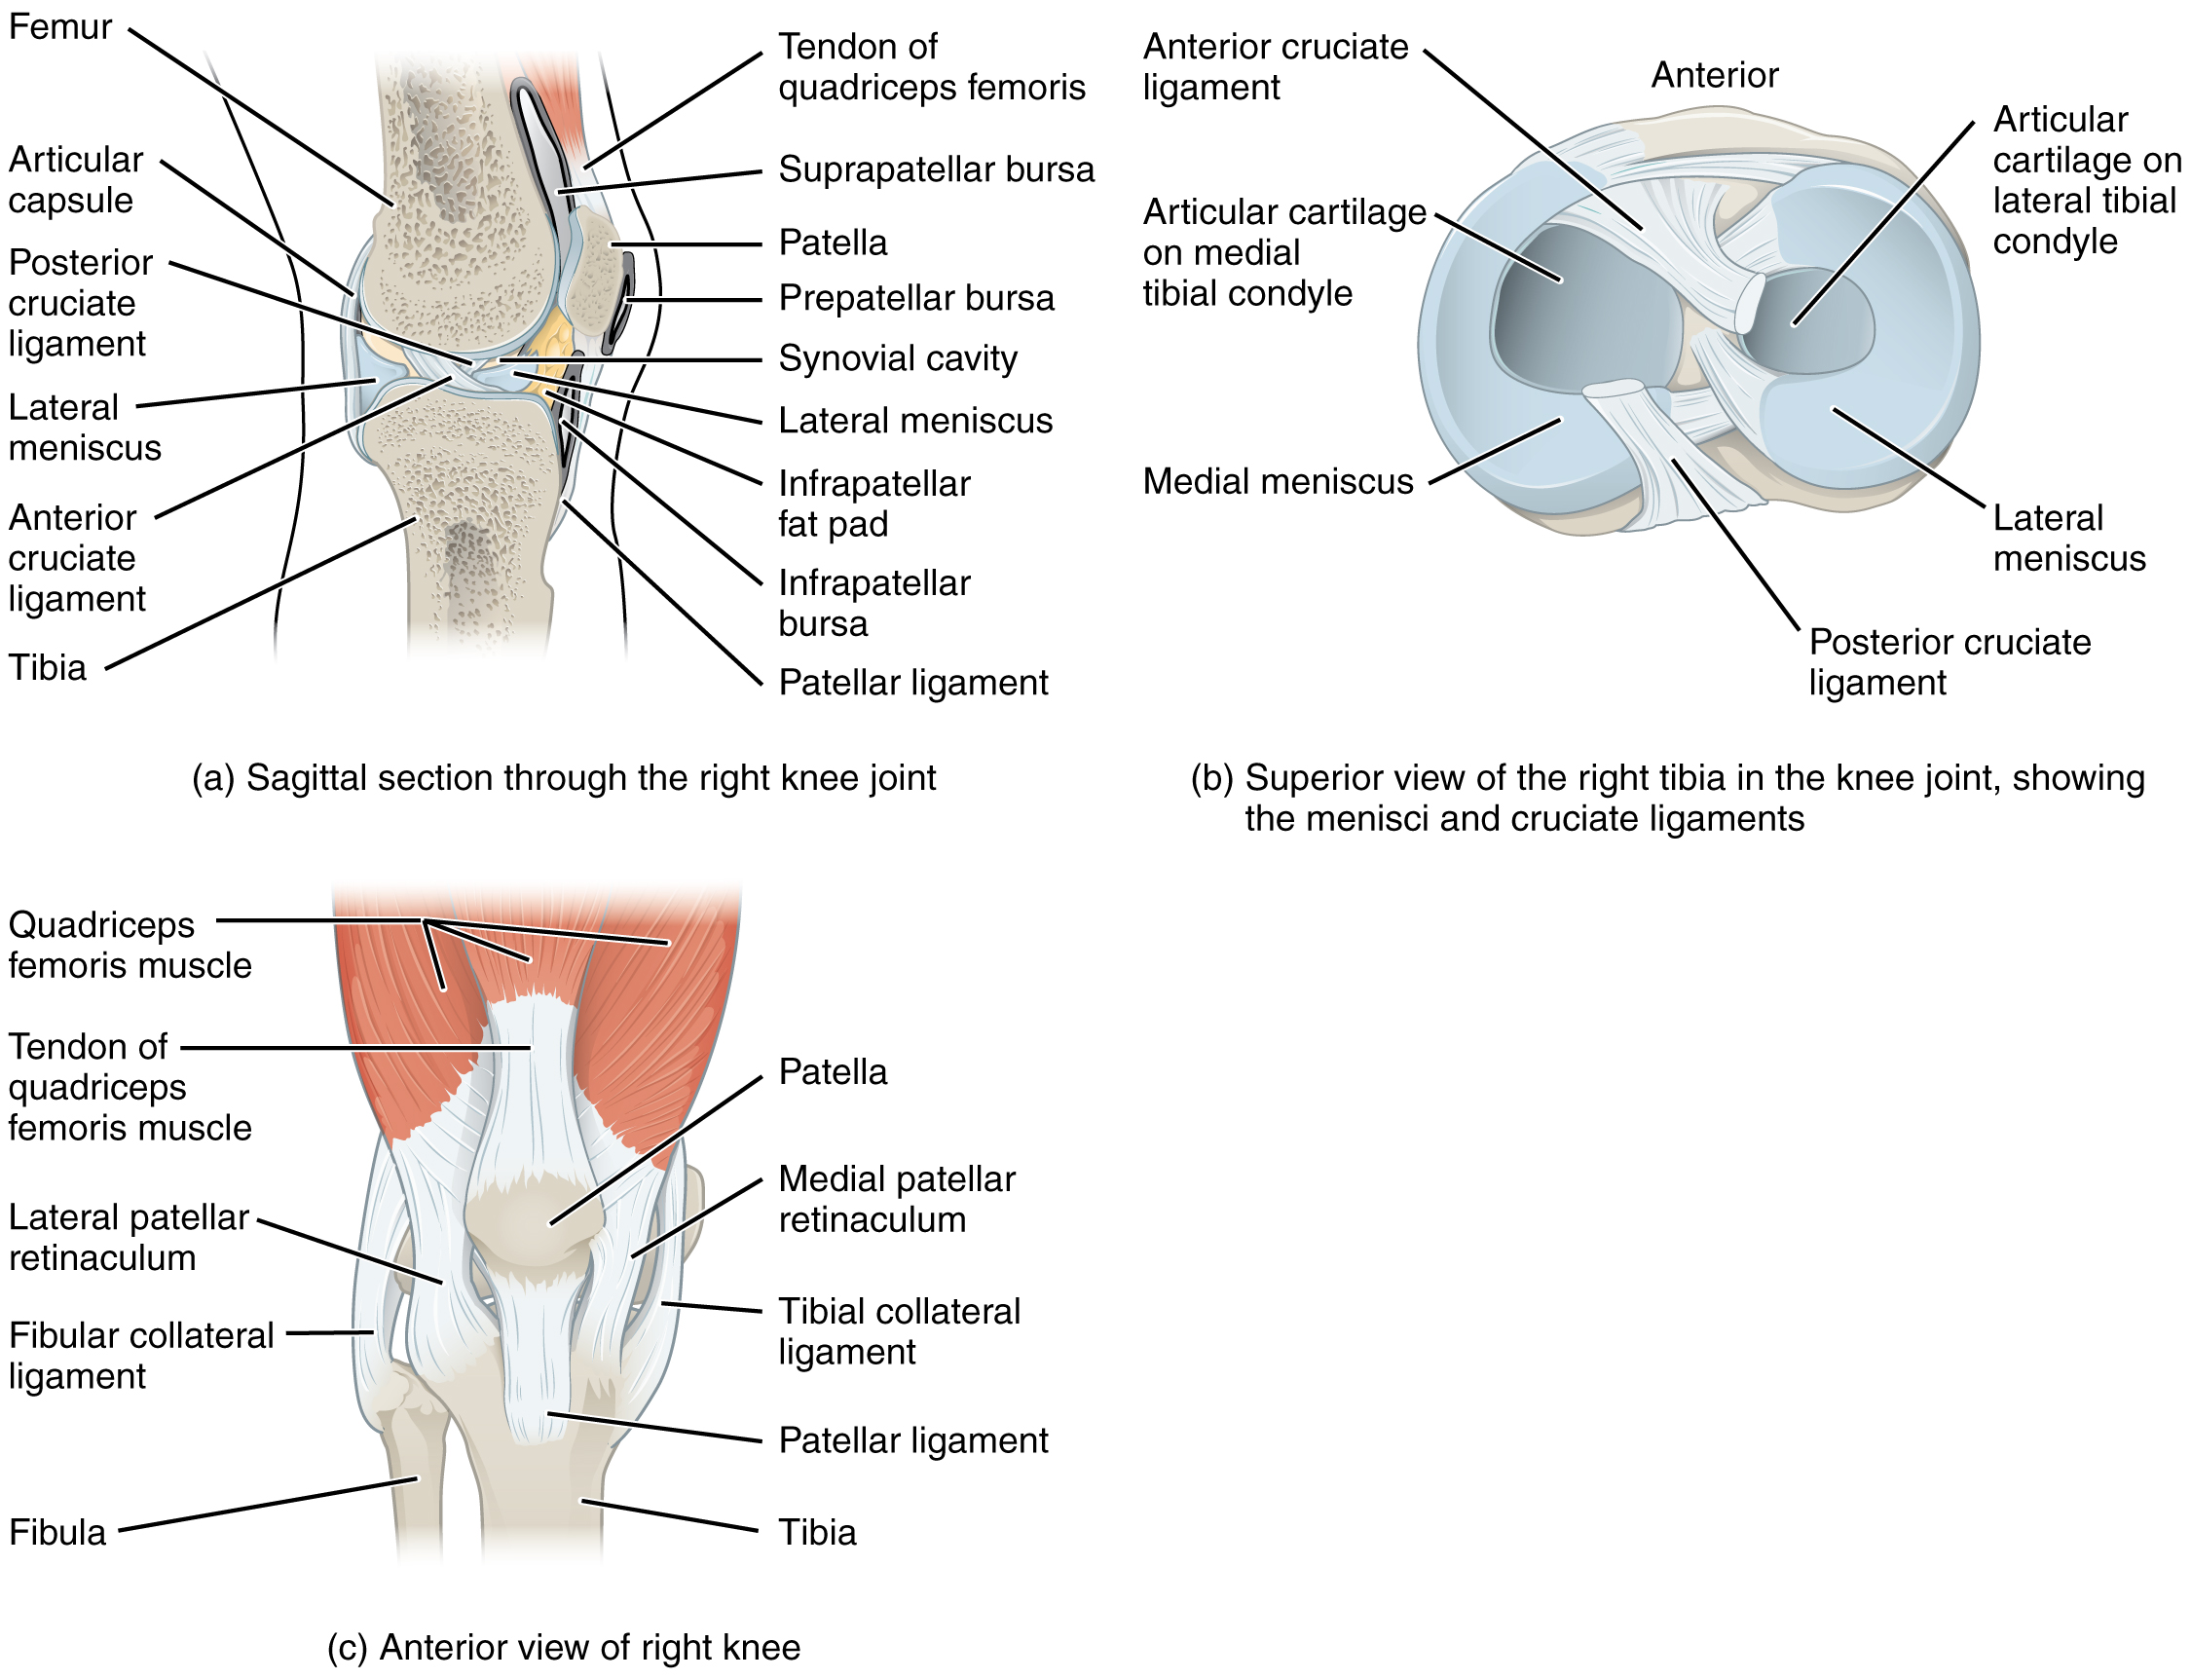 This image shows the different views of the knee joint. The top, left panel shows the sagittal view of the right knee joint. The top, left panel shows the superior view of the right tibia, identifying the ligaments. The bottom, right panel shows the anterior view of the right knee.